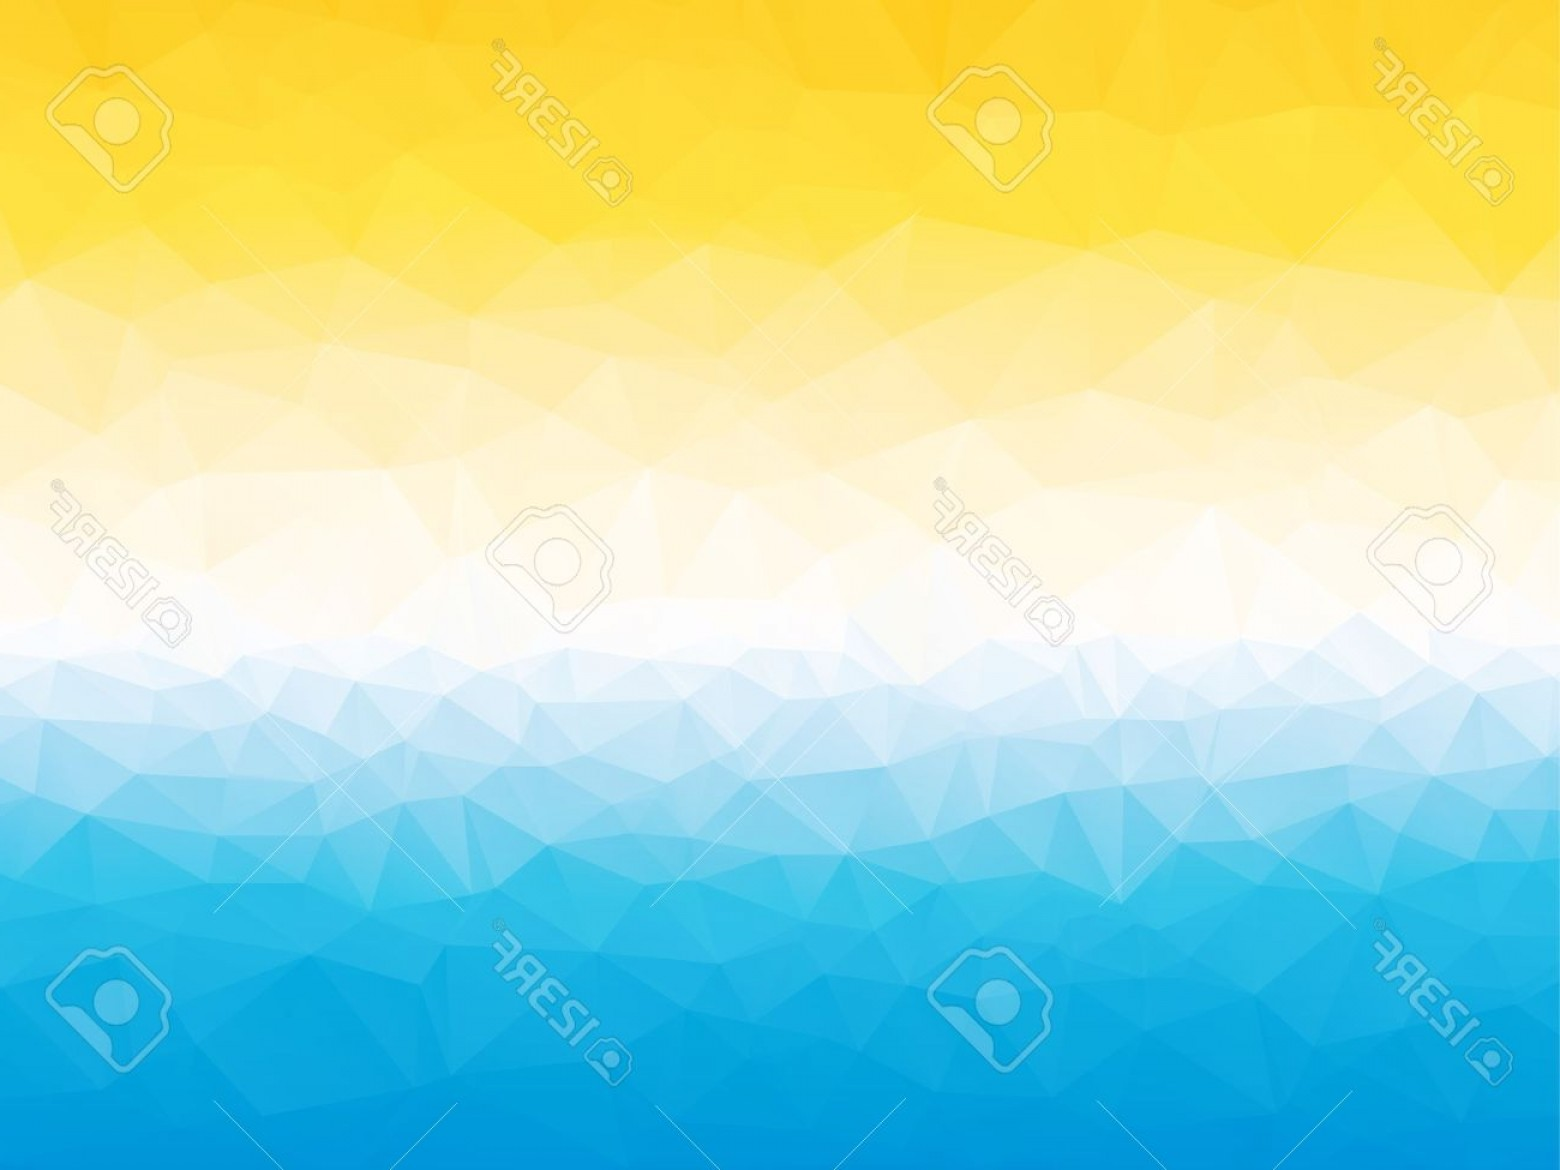 Blue White Background Vector: Photostock Vector Summer Yellow Blue White Triangular Background With Horizon